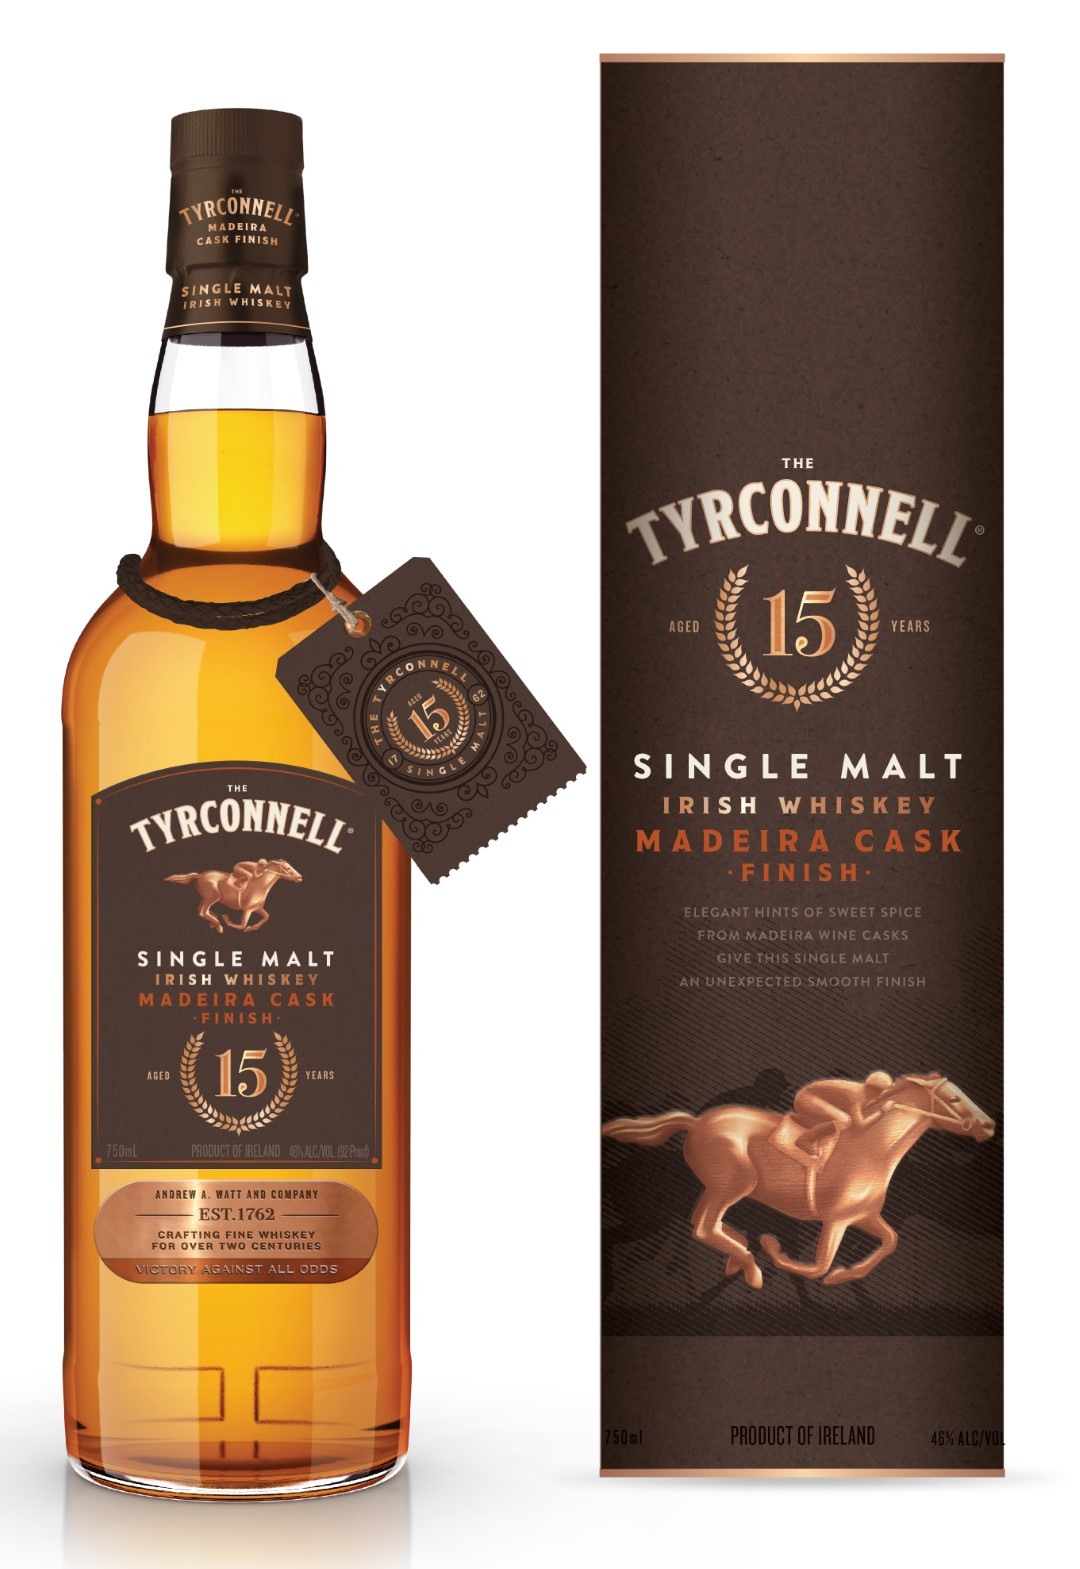 The Tyrconnell Single Malt Irish Whiskey Madeira Cask Finish 15 Years Old